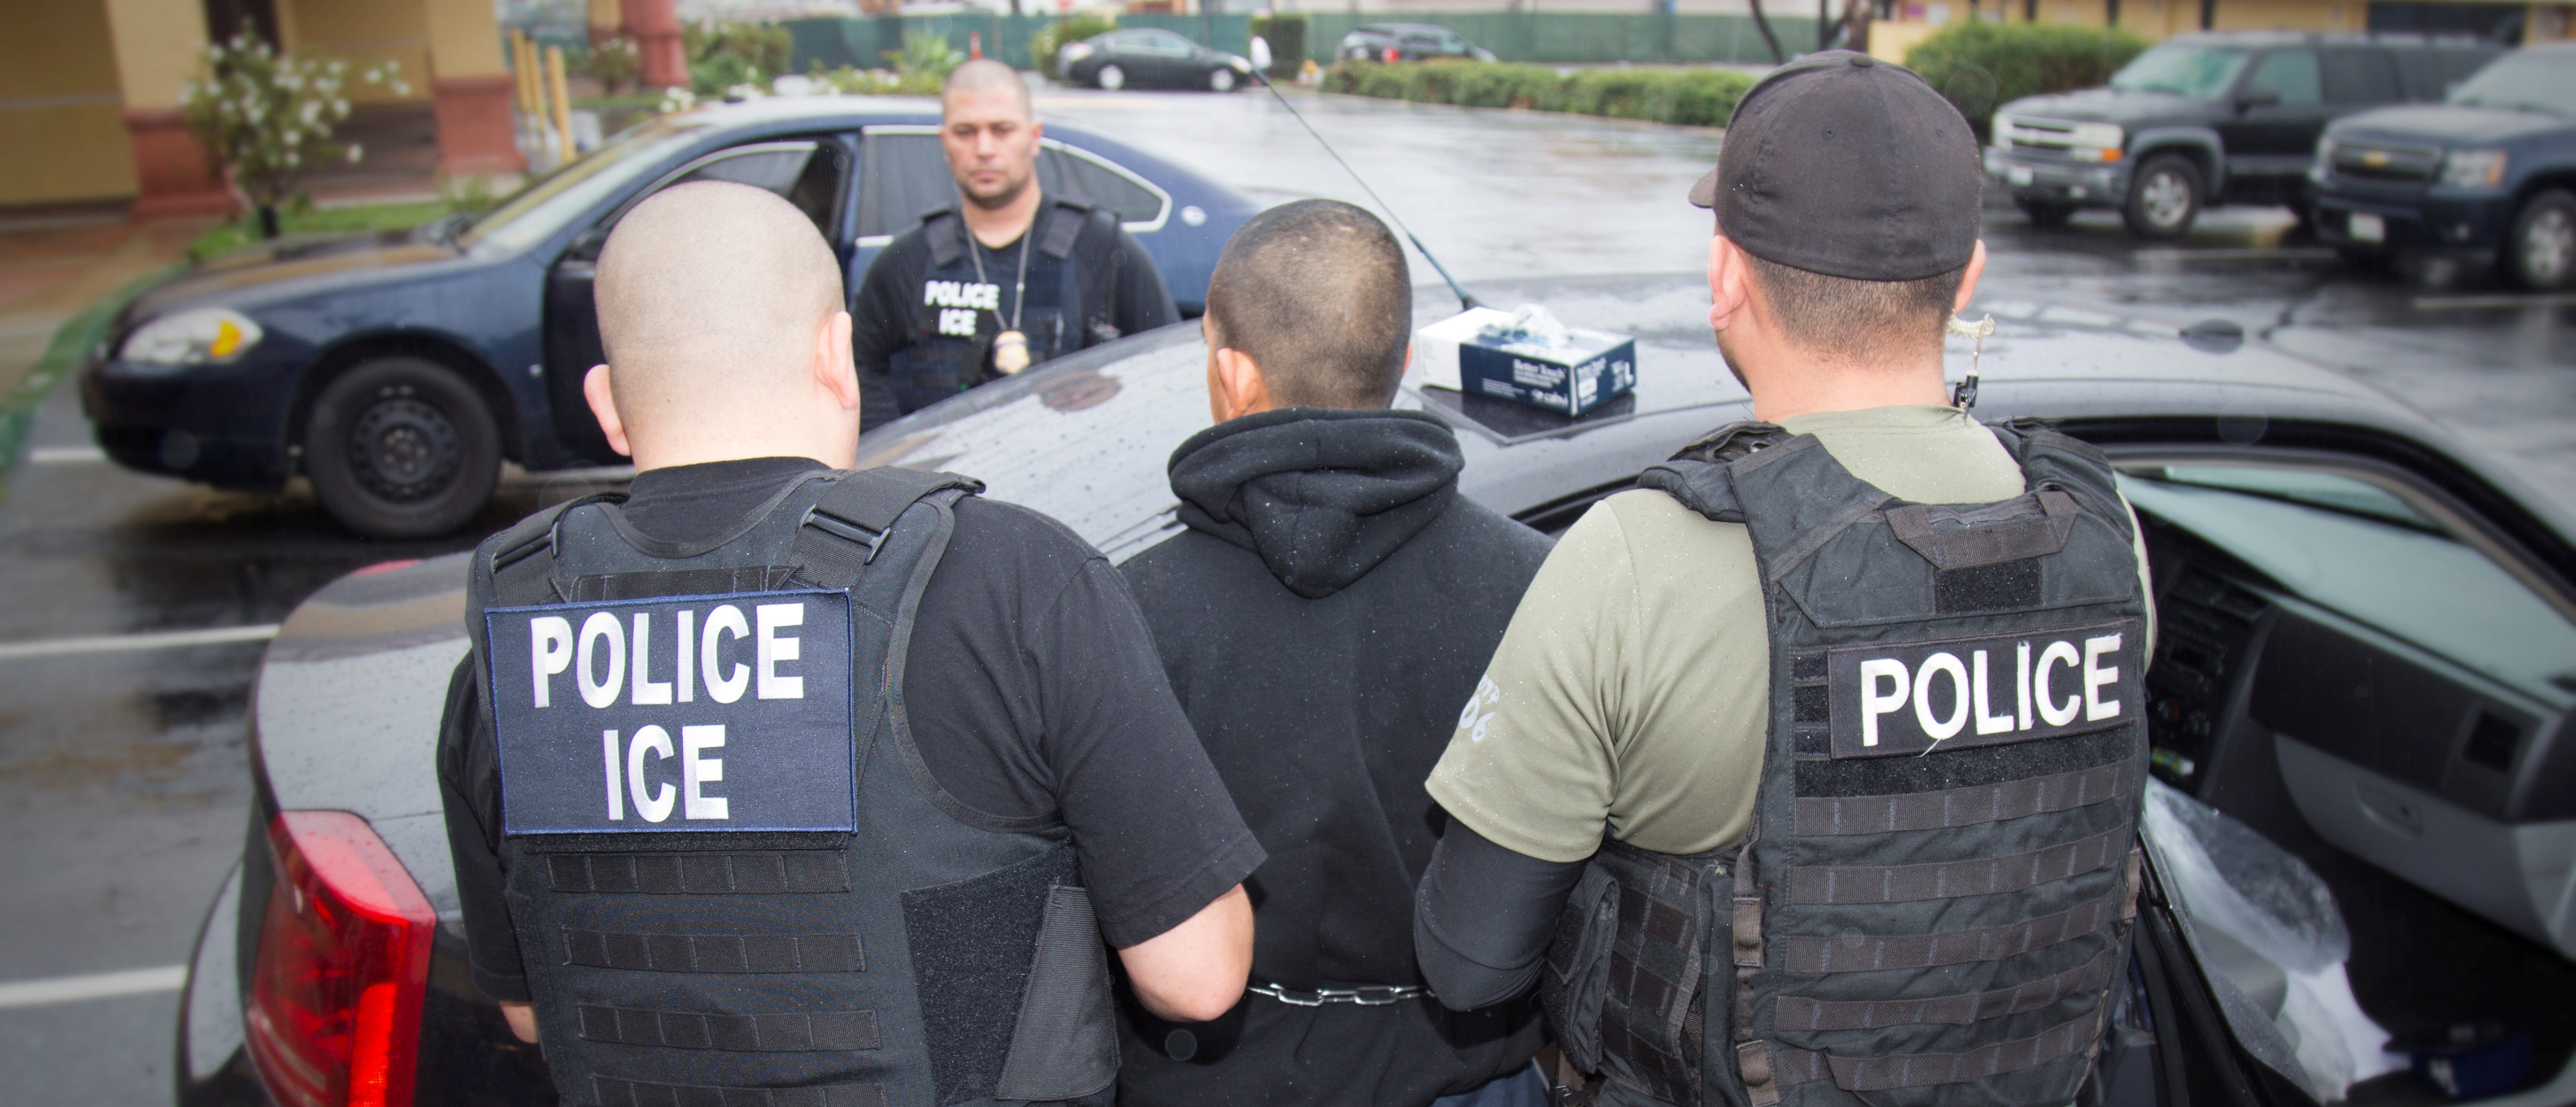 U.S. Immigration and Customs Enforcement (ICE) officers detain a suspect as they conduct a targeted enforcement operation in Los Angeles, California, U.S. on February 7, 2017. Picture taken on February 7, 2017. Courtesy Charles Reed/U.S. Immigration and Customs Enforcement via REUTERS ATTENTION EDITORS - THIS IMAGE WAS PROVIDED BY A THIRD PARTY. EDITORIAL USE ONLY. - RC19C99BF310